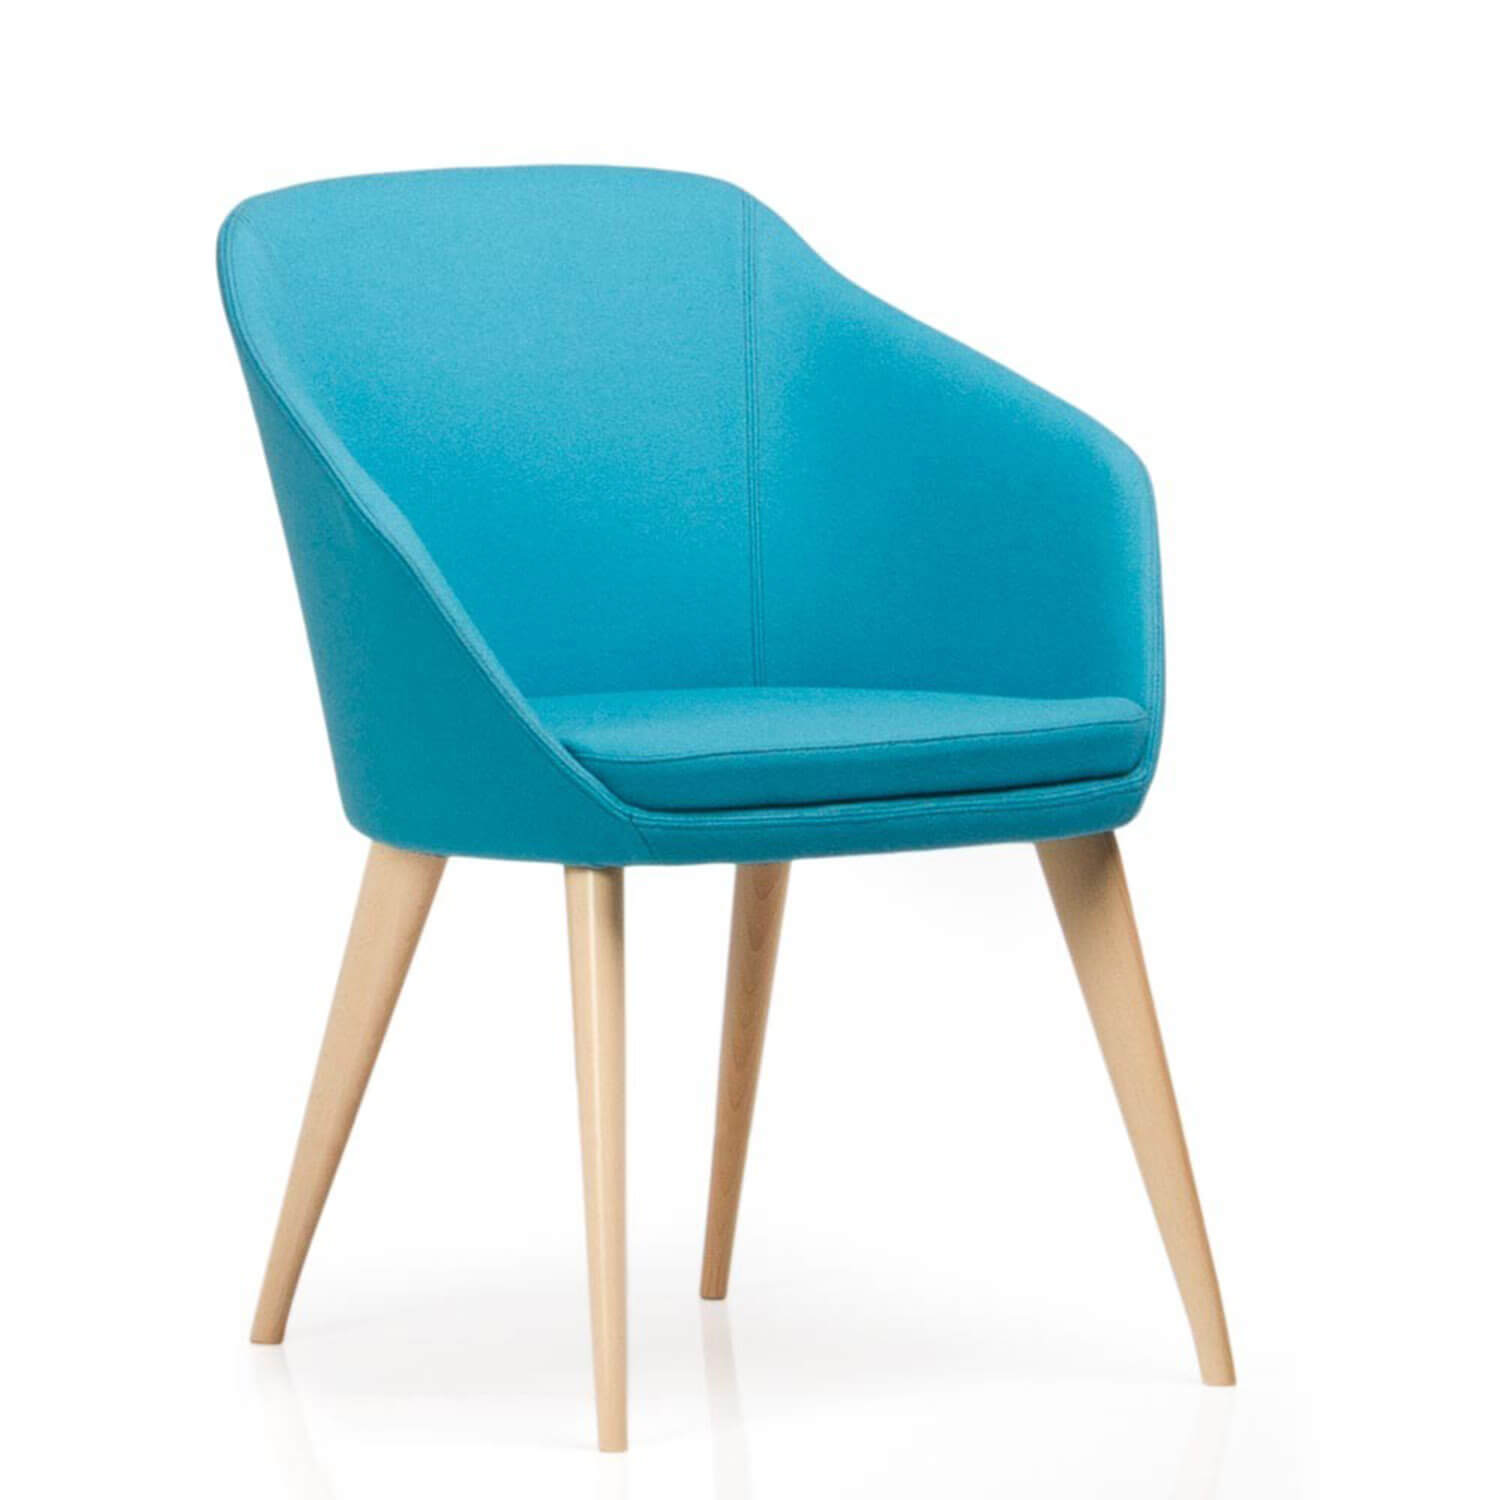 ARMCHAIRS AND TUB CHAIRS | Business Interiors